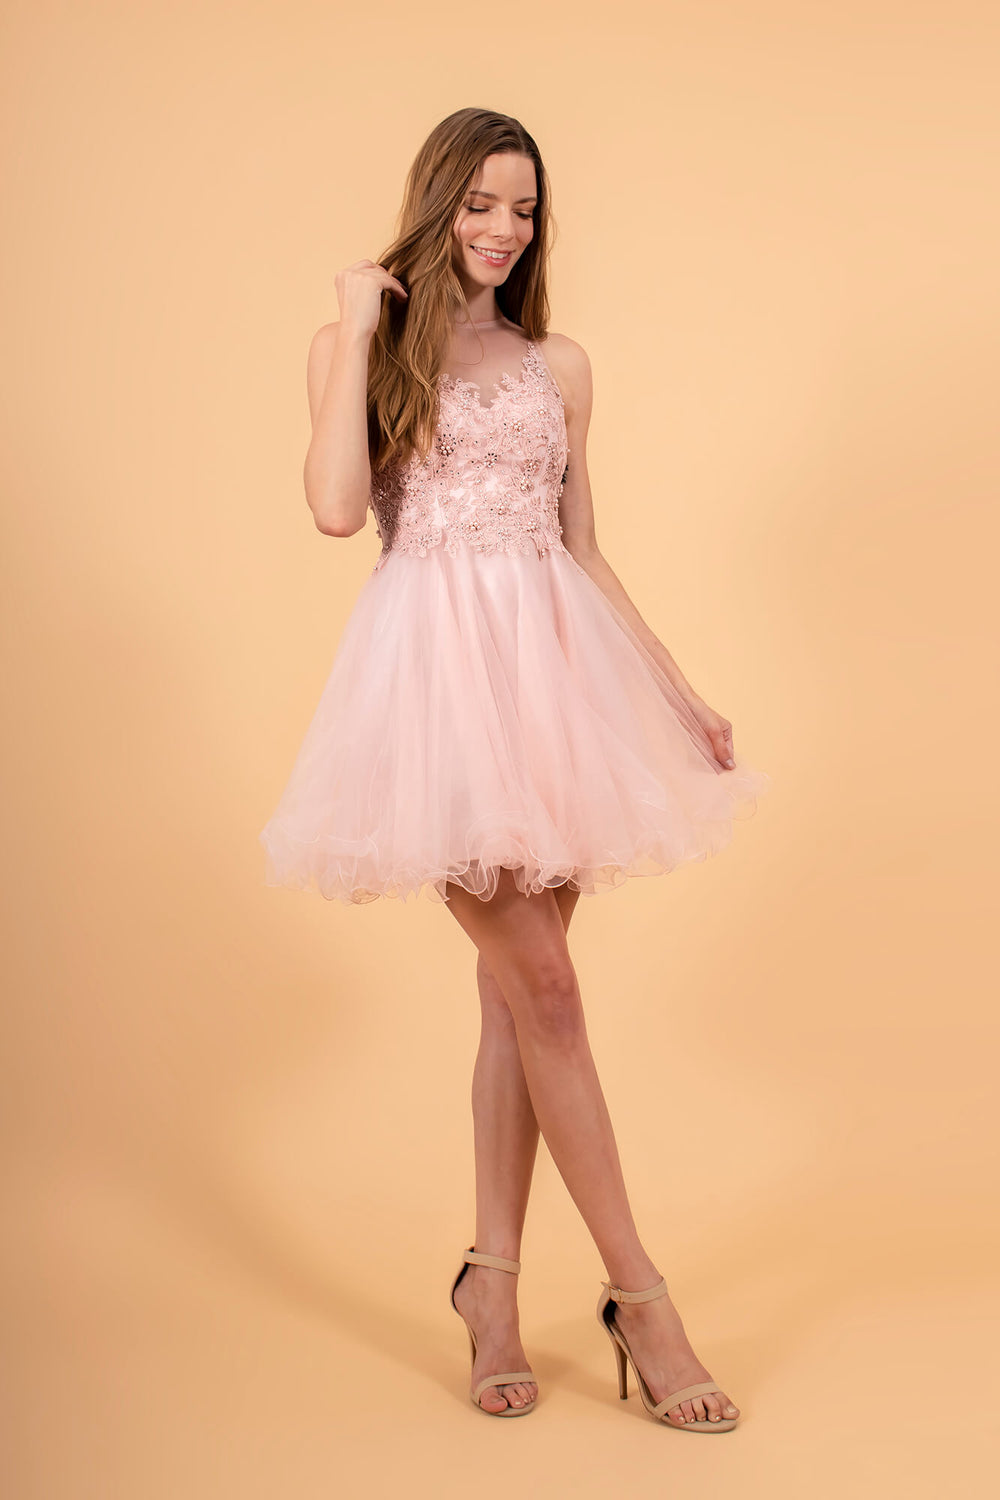 Short Prom Dress Formal Homecoming - The Dress Outlet Blush